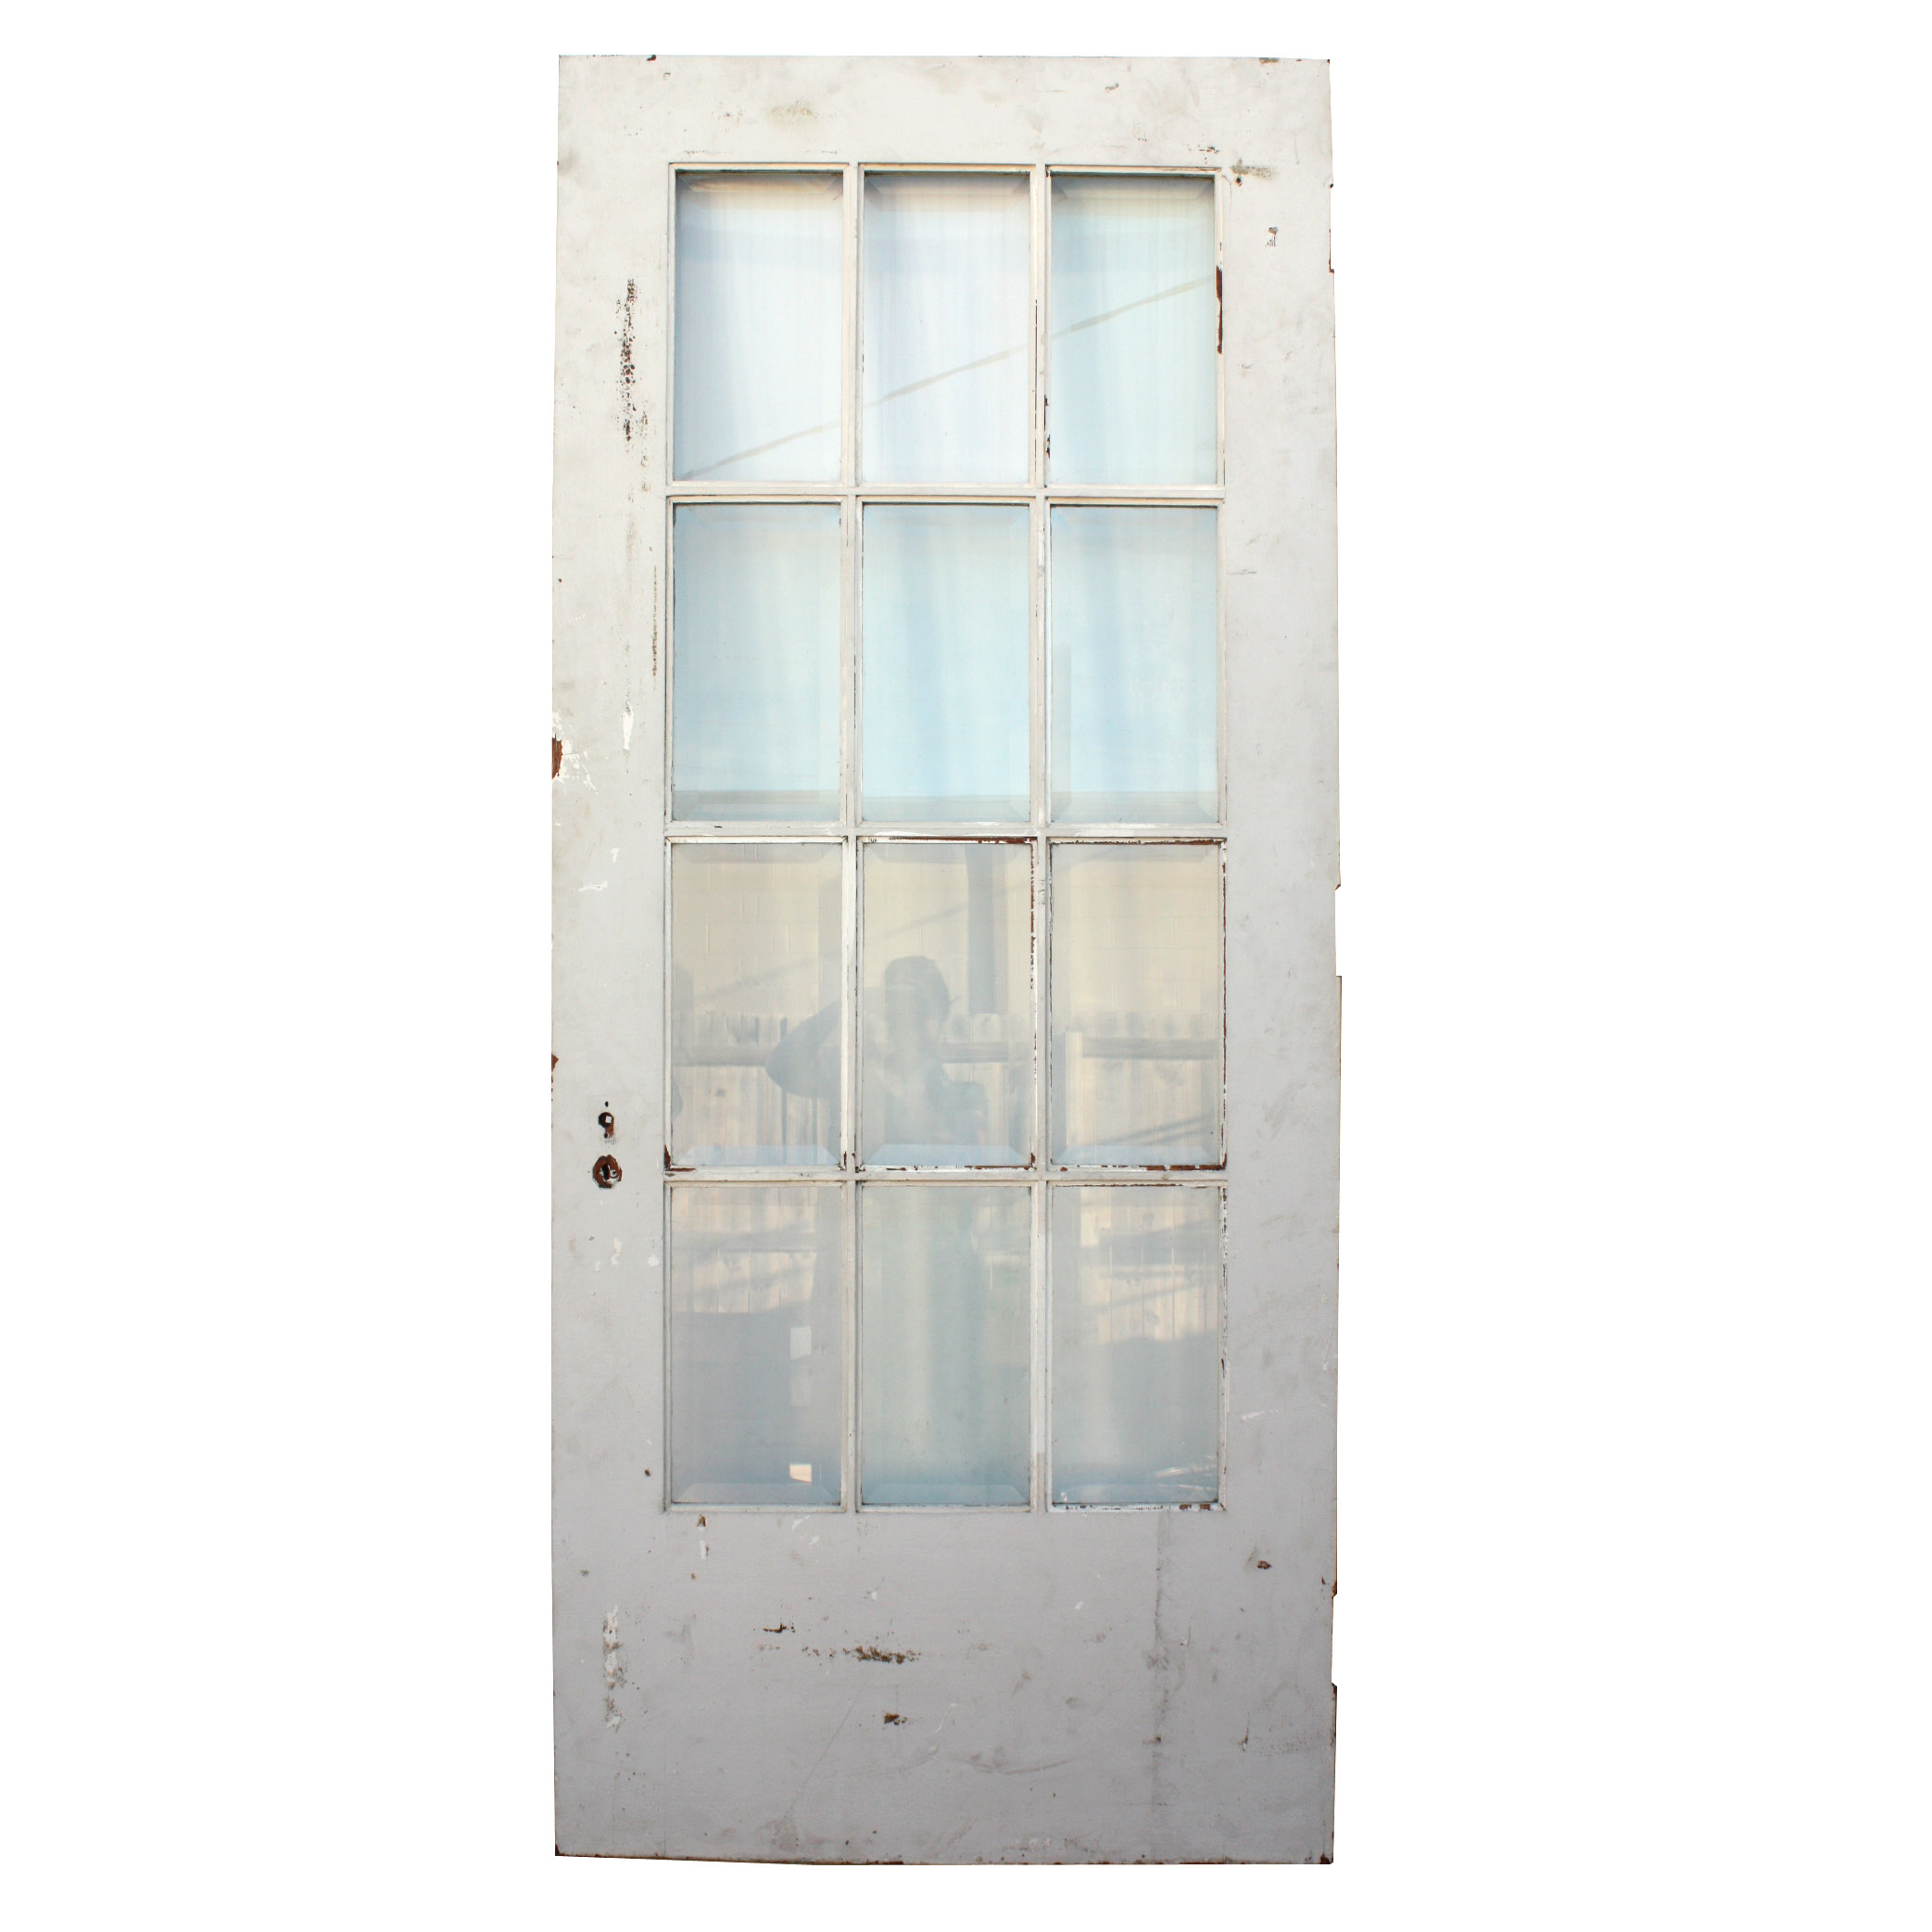 Antique exterior oak door with beveled glass 3 x 7 for Exterior glass doors for sale